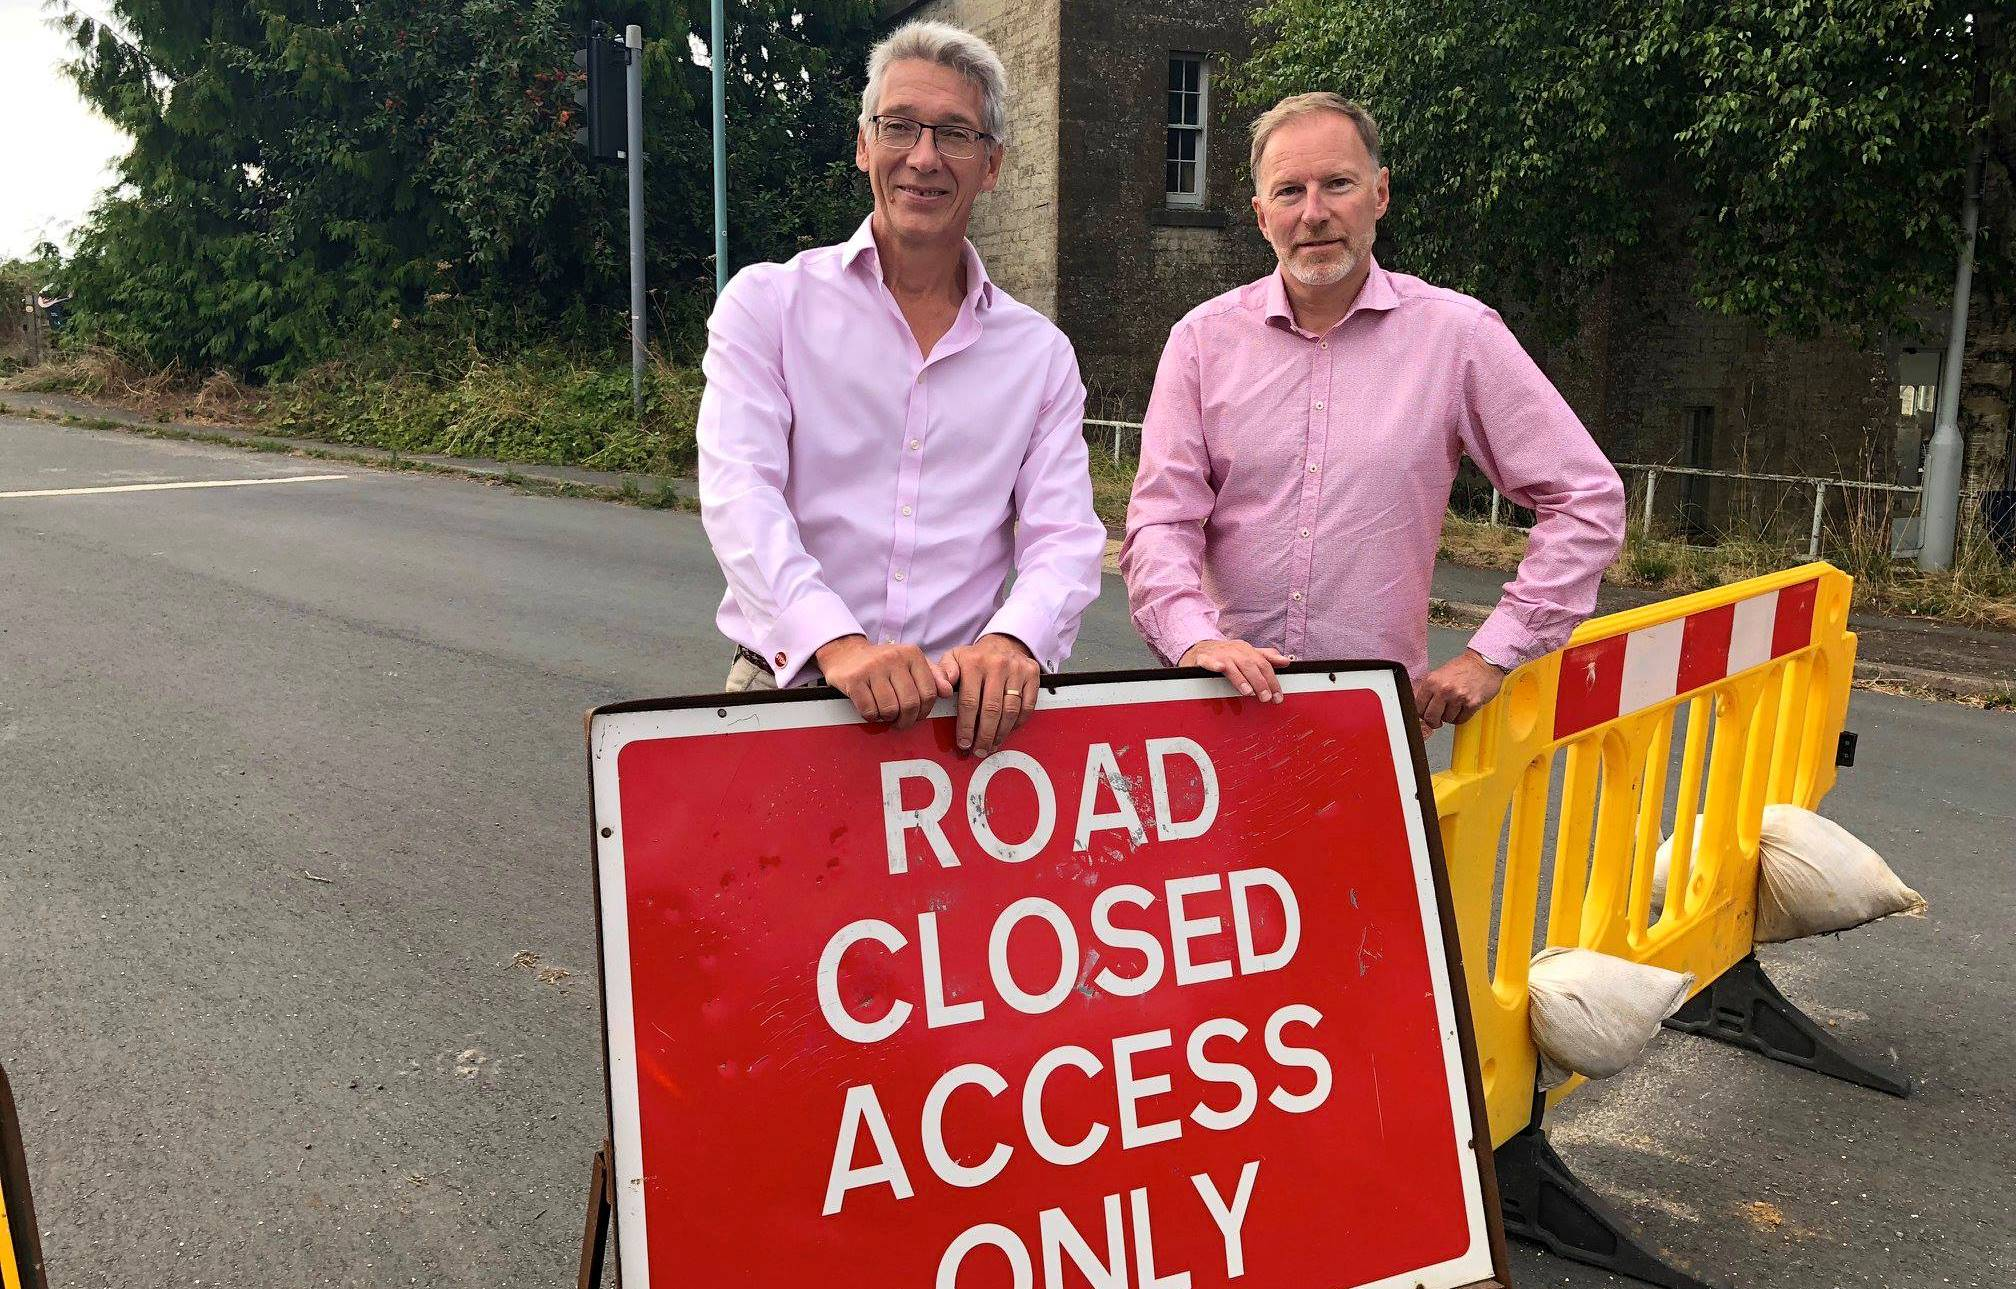 Work to reopen Old A40 starts despite crisis